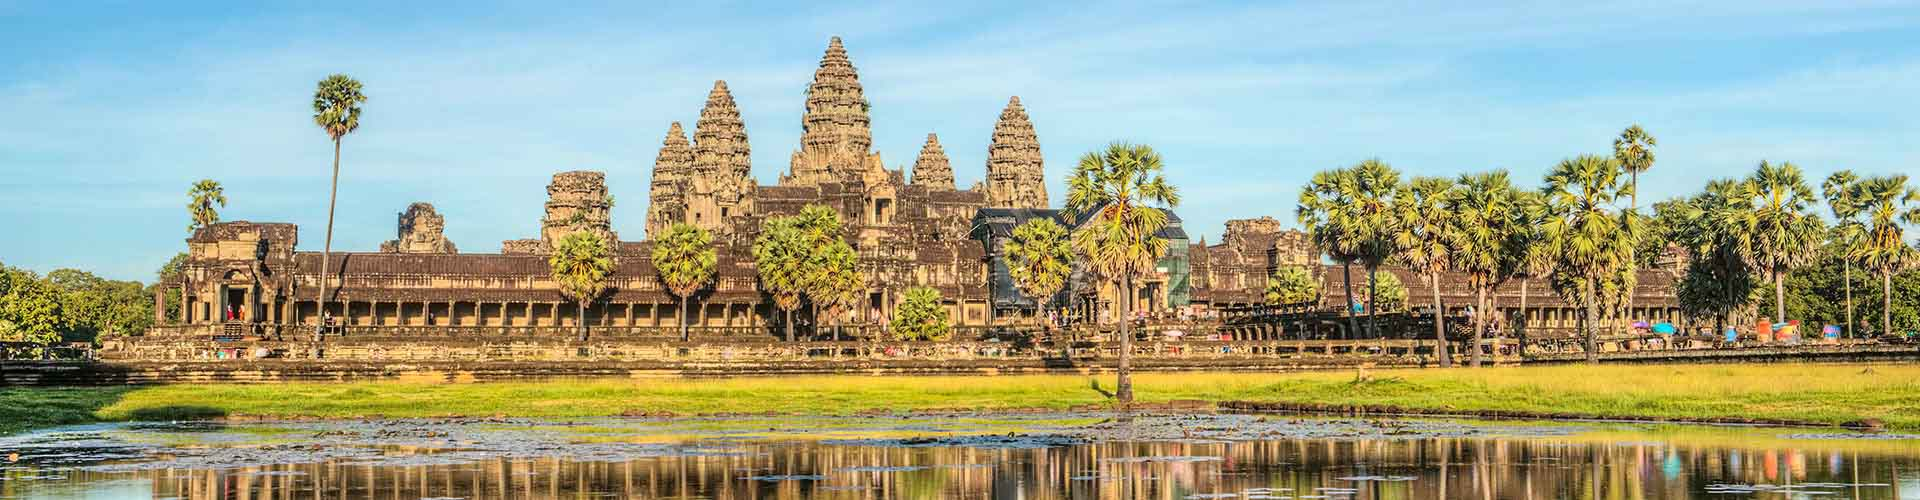 Siem Reap – Hostels in Siem Reap. Maps for Siem Reap, Photos and Reviews for each hostel in Siem Reap.